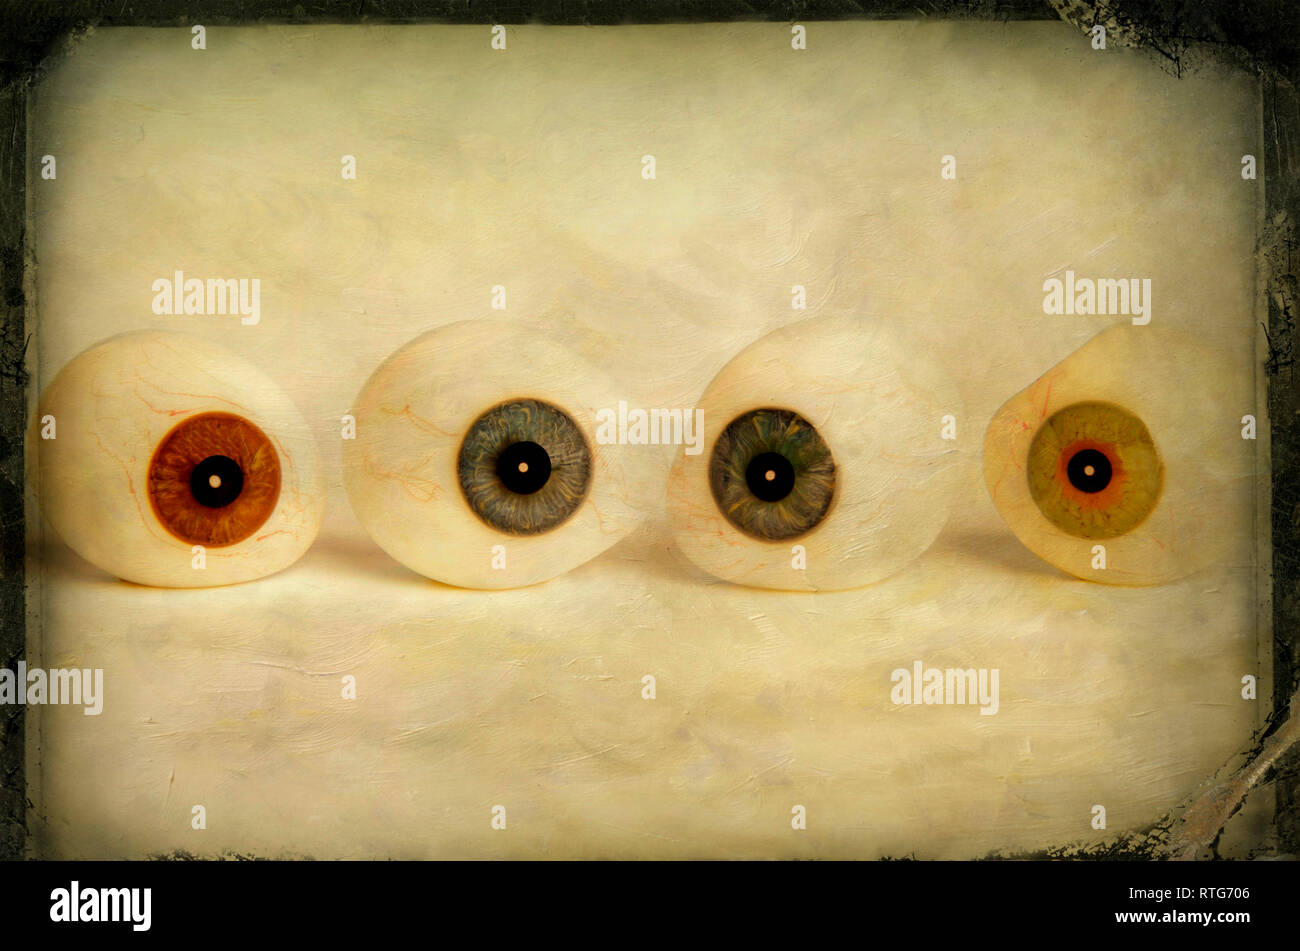 Artificial eyeballs, cut out - Stock Image